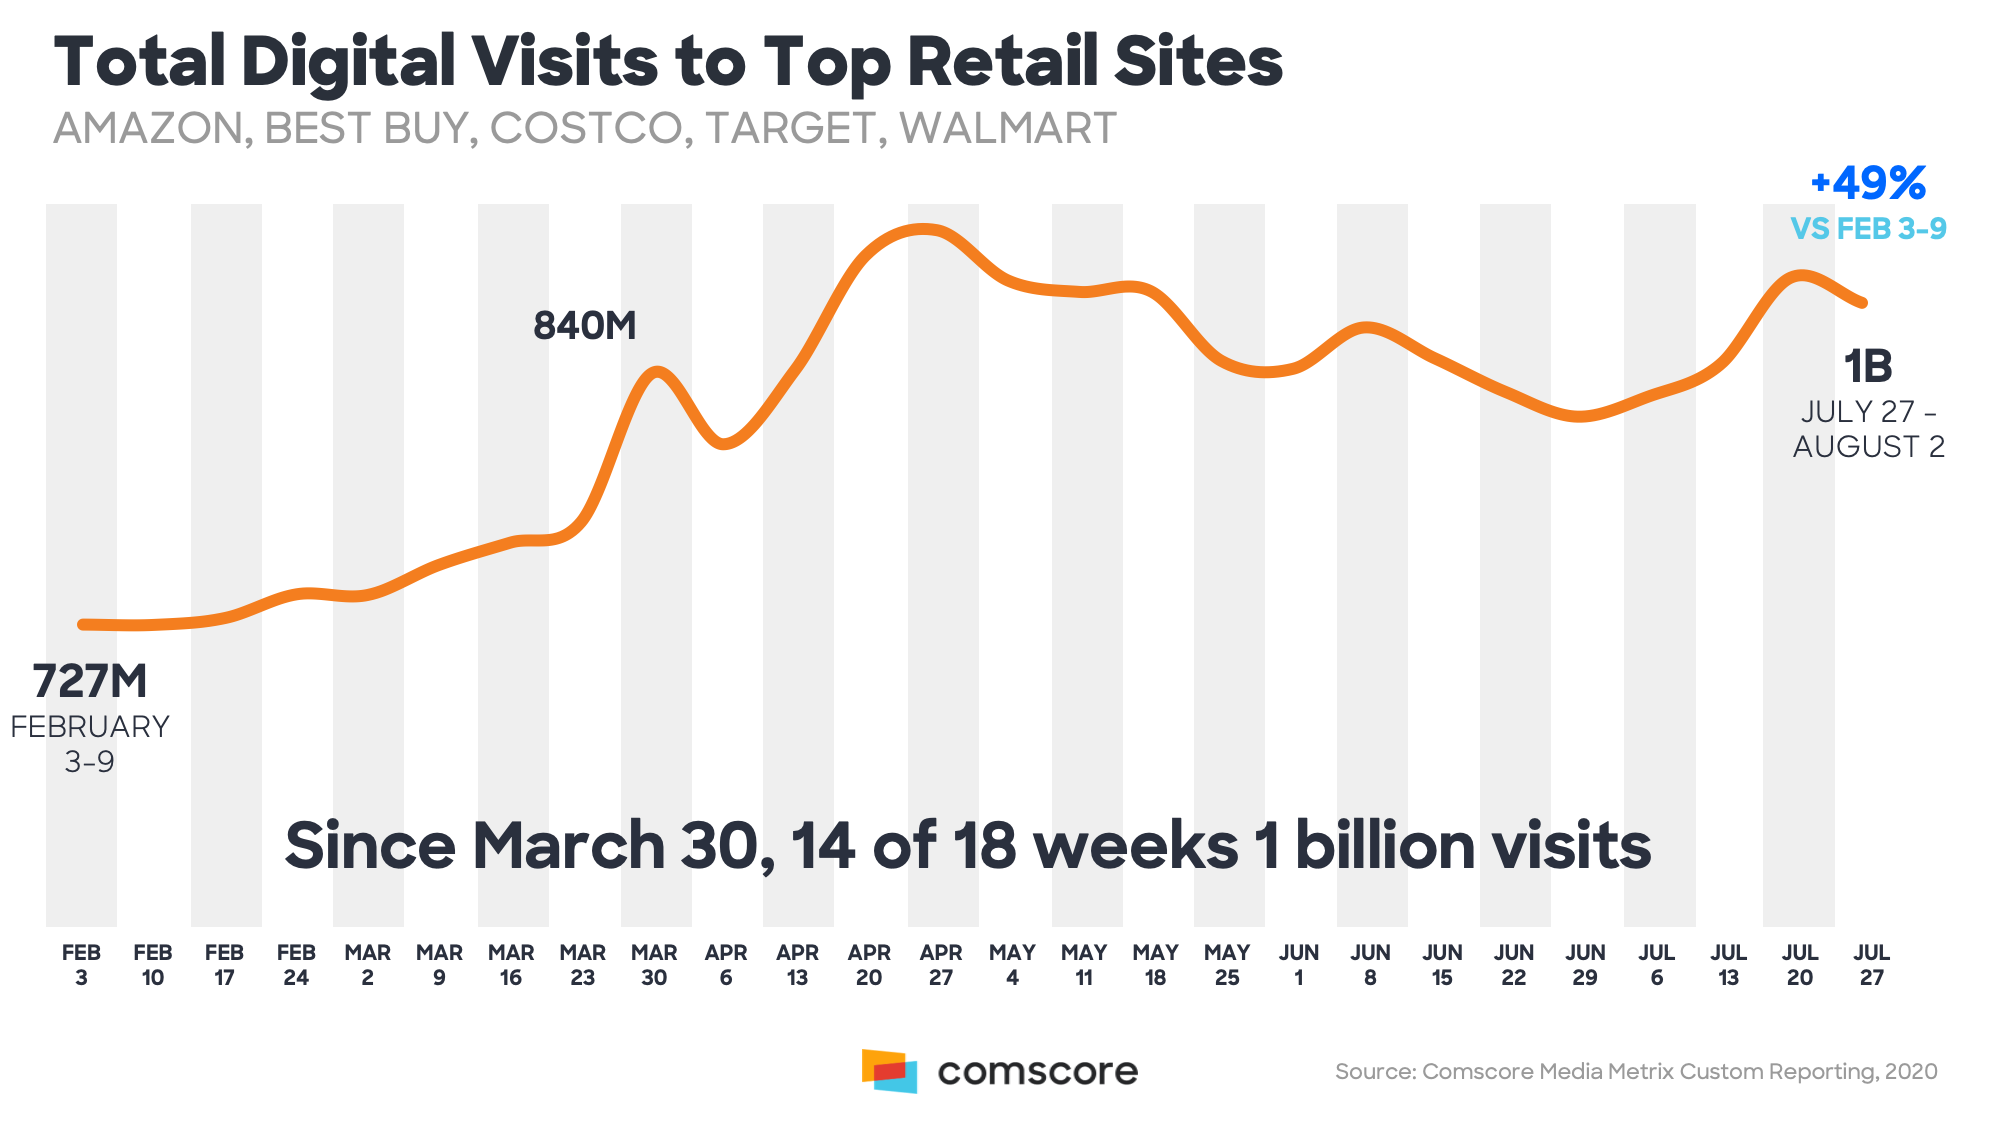 Total Digital Visits to Top Retail Site